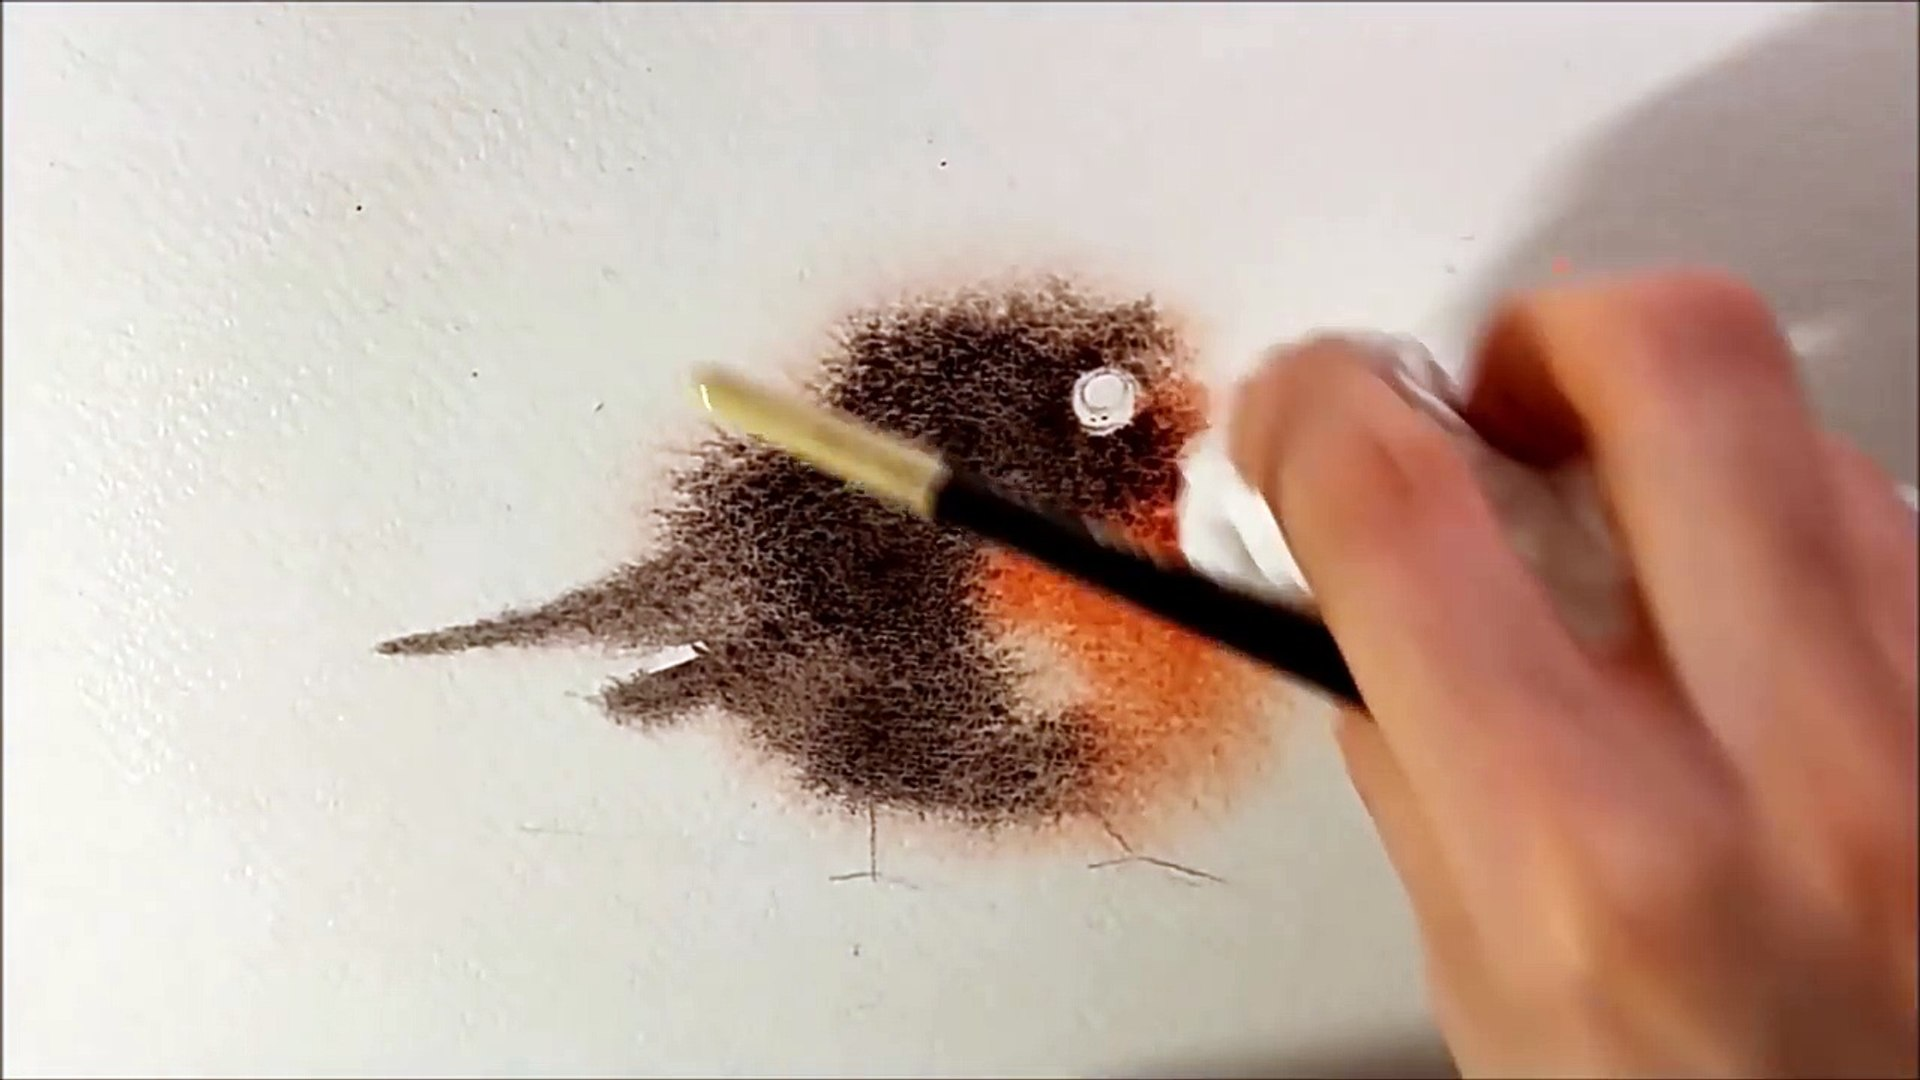 Explained Real Time Watercolor Illustration Fuzzy Bird Painting by Iraville